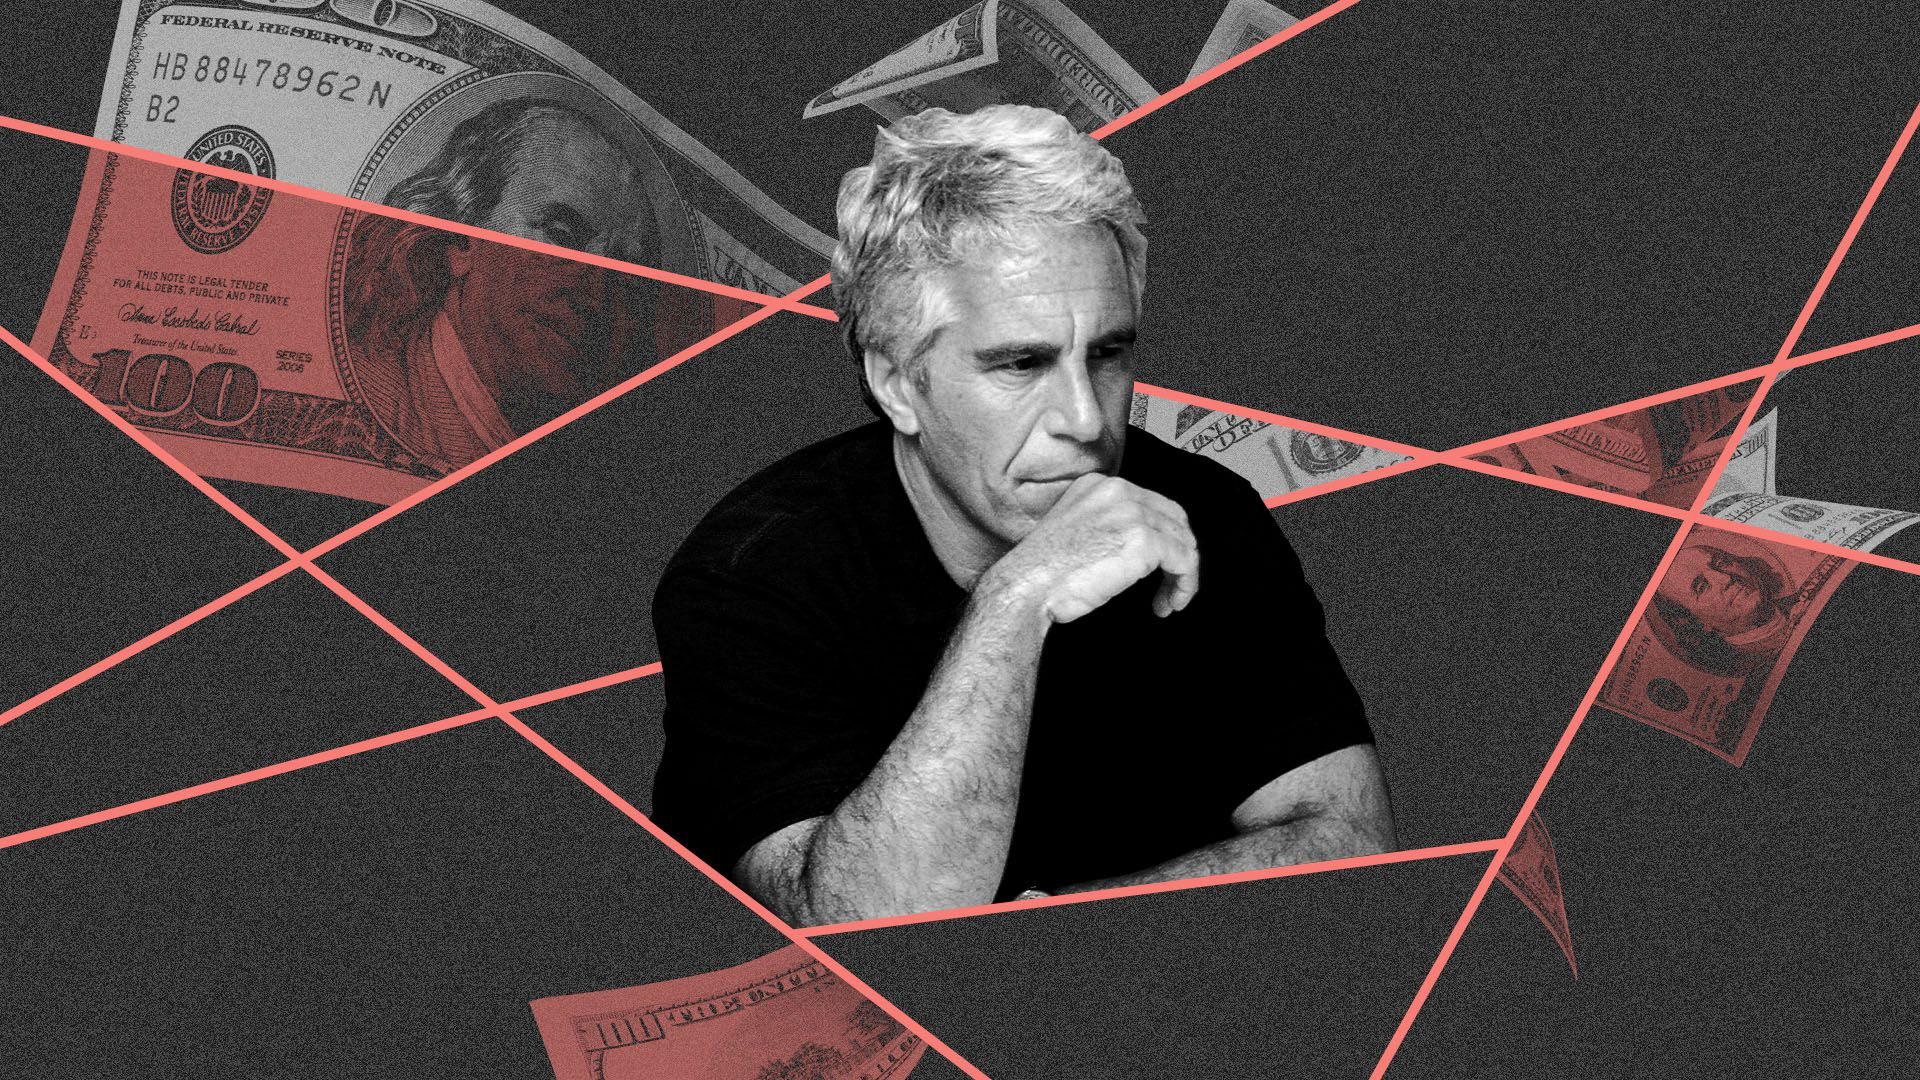 Illustration of Jeffrey Epstein against a background of money